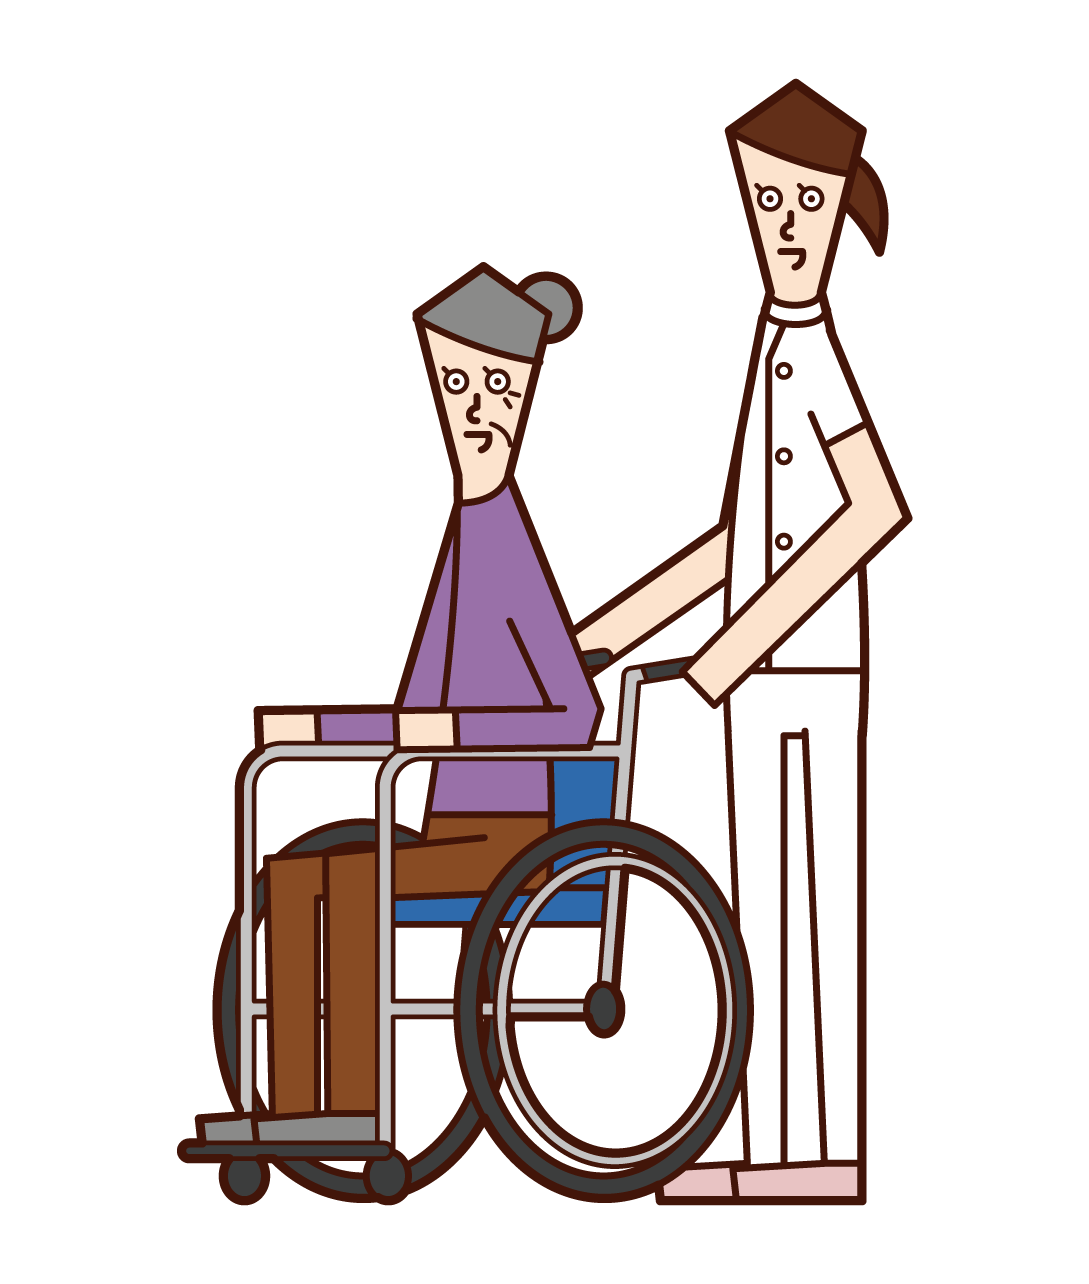 Illustration of a care worker (woman) pushing a wheelchair